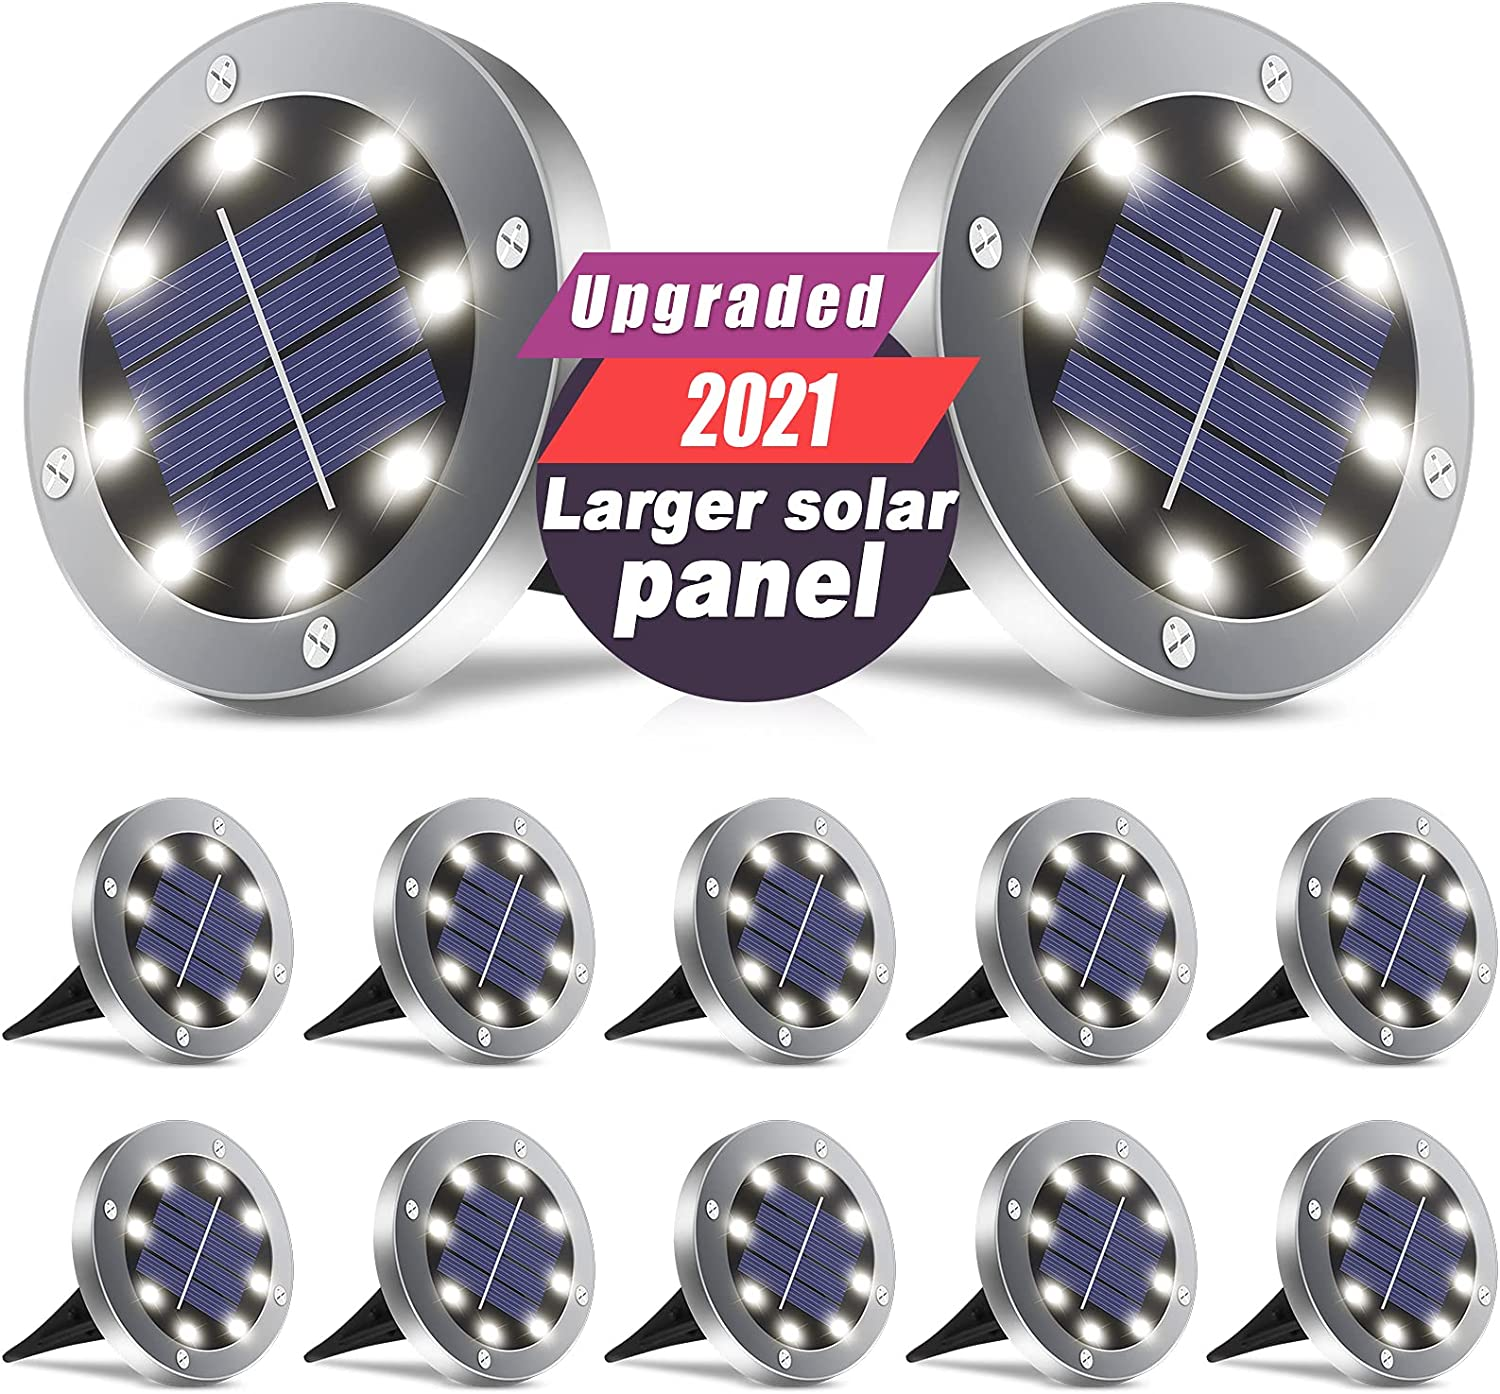 Solar Lights Outdoor, 2021 Upgraded Larger Solar Panel, 8 LED Solar Garden Lights Waterproof In-Ground Lighting for Landscape Patio Pathway Lawn Yard Walkway Warm White 12 Pack